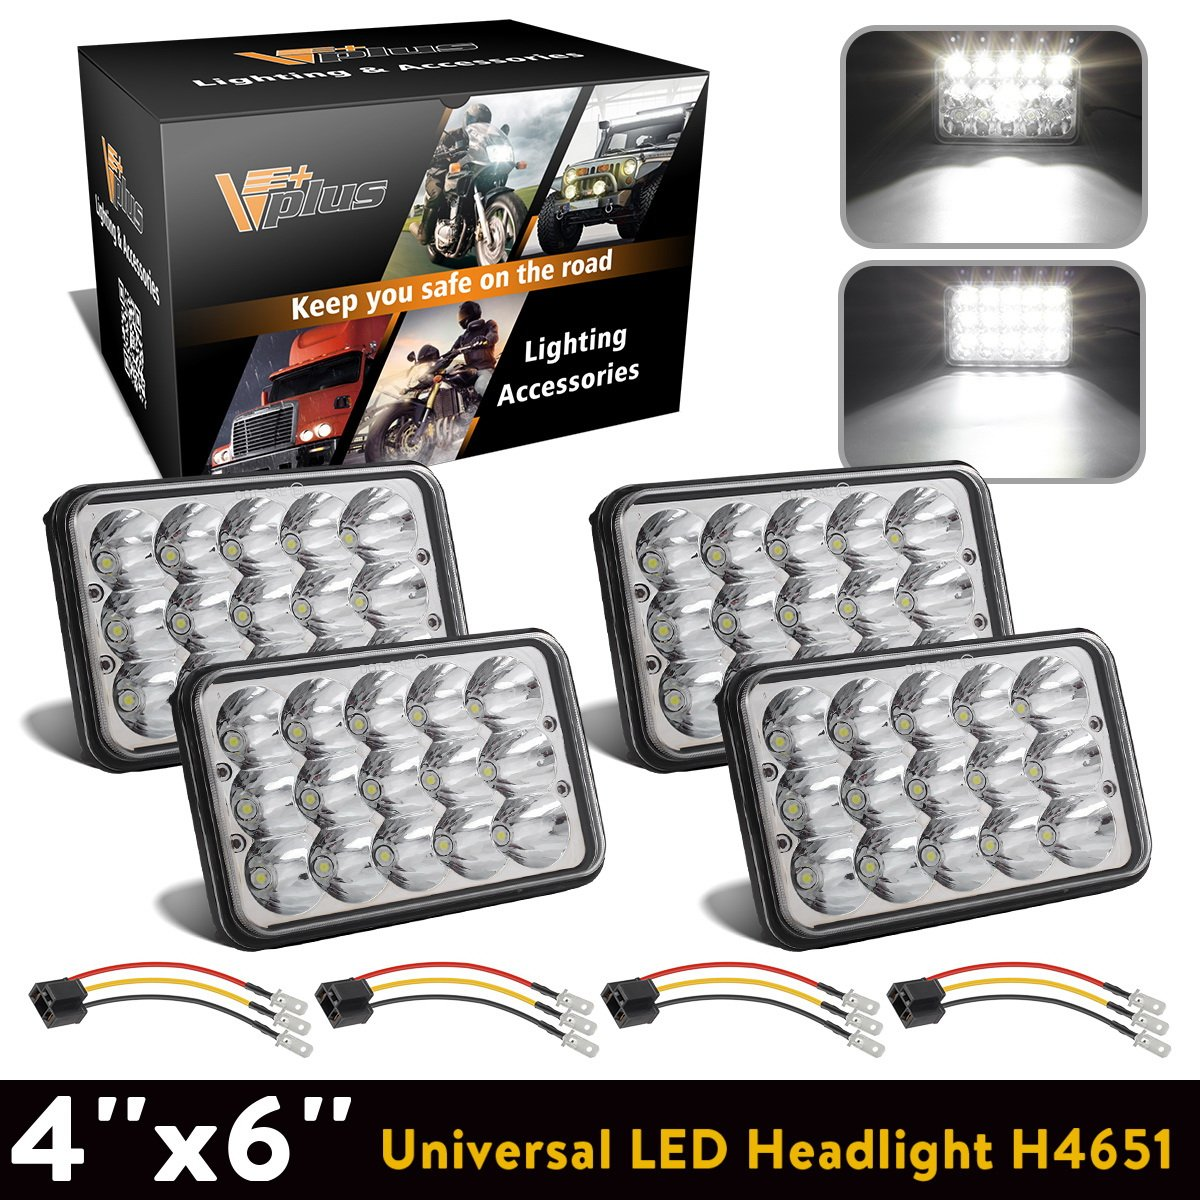 5x7 LED Headlights 7x6 Headlamps Osram Chip Angel Eye DRL Sealed Beam Replacement for H6054 6054 Jeep Wrangler YJ Cherokee XJ Chevy Express Astro Van Blazer S10 Toyota 4Runner Ford Ranger DOT 2PCS Vplus